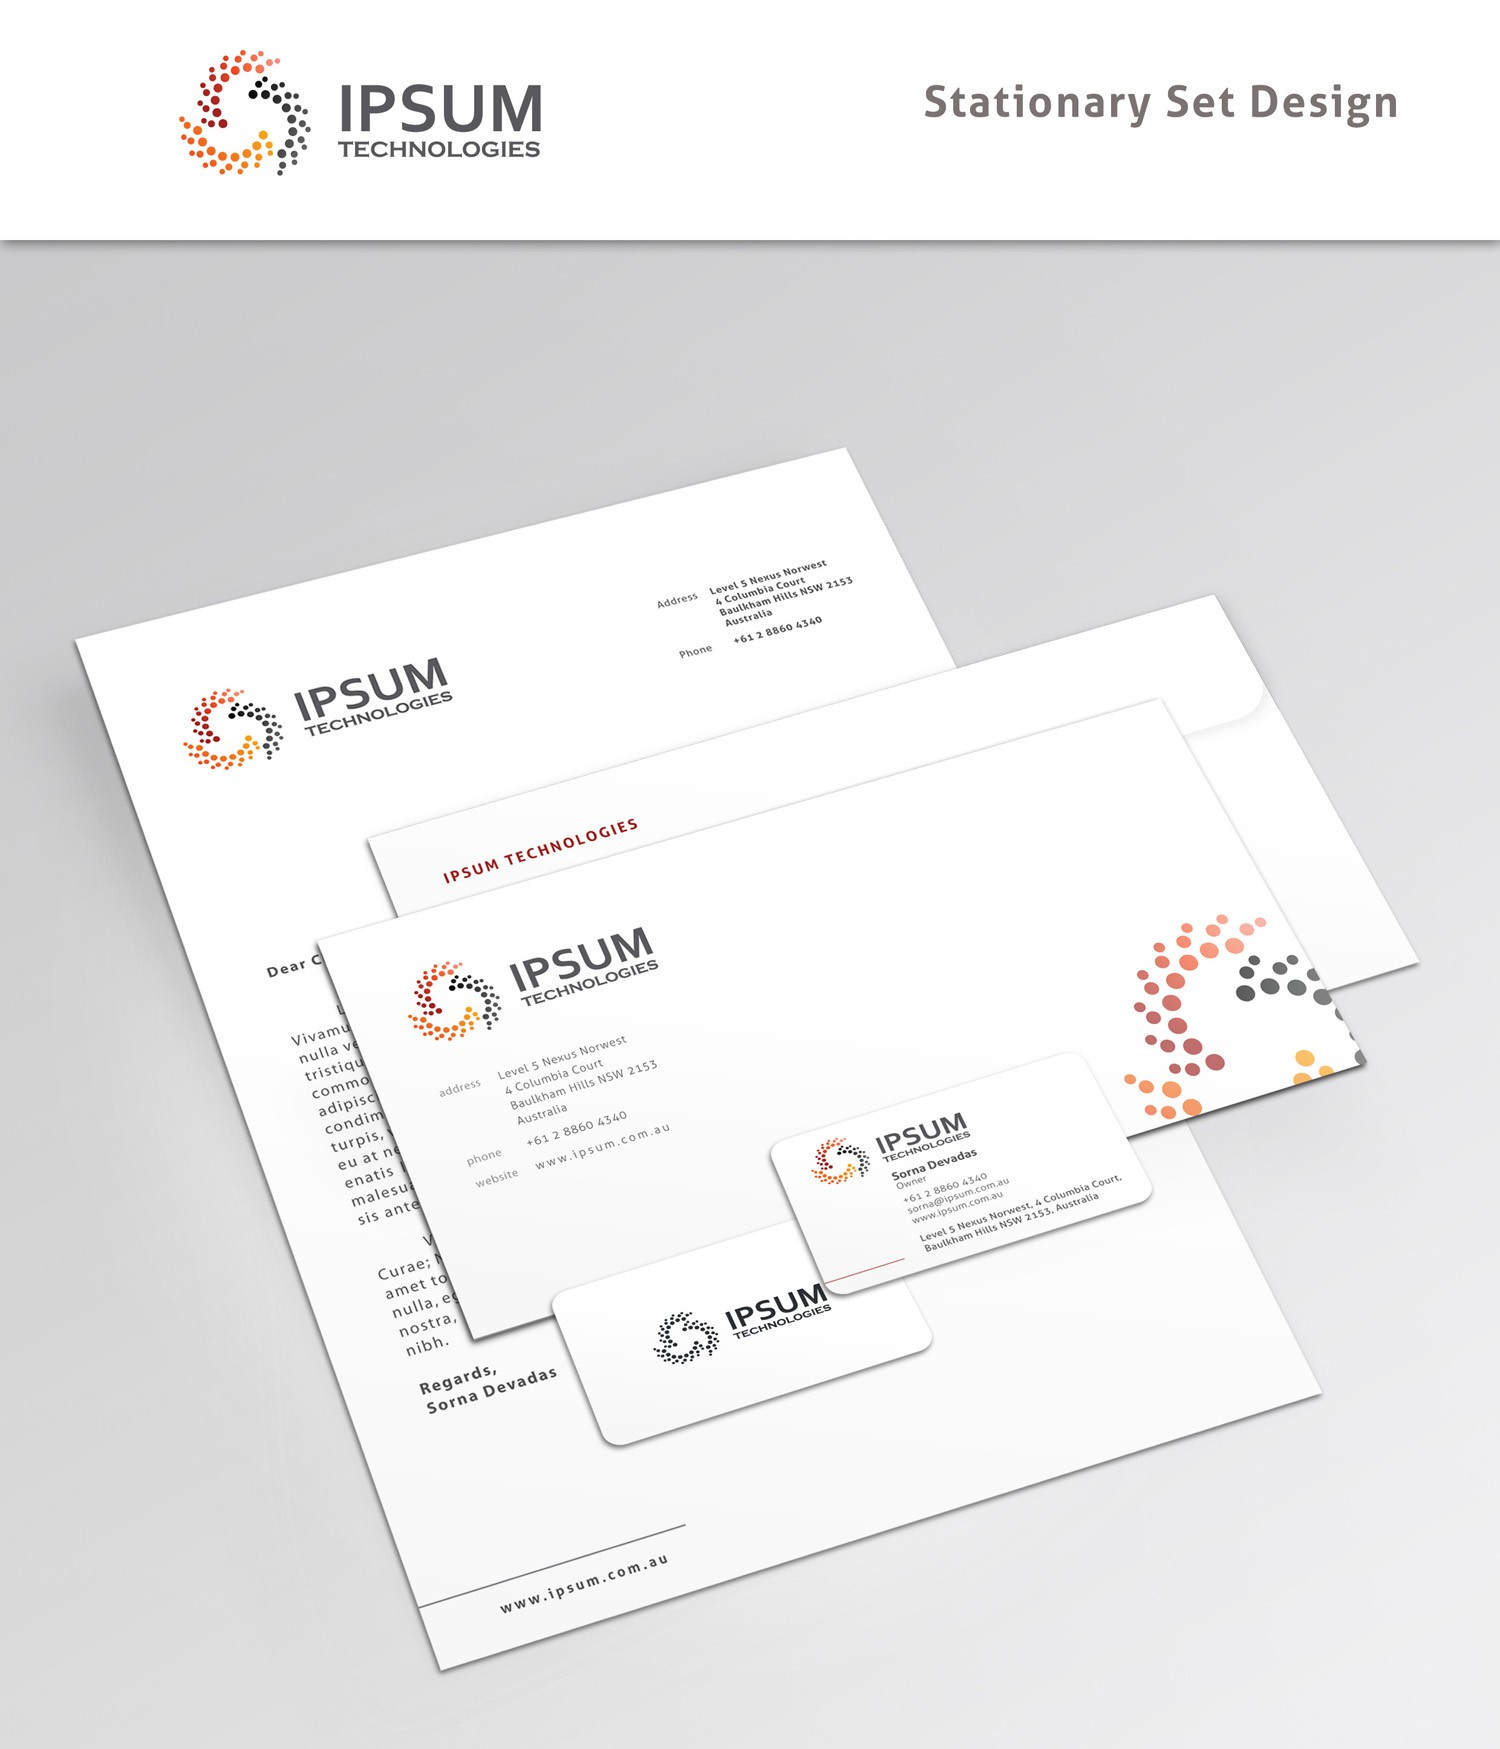 Create the stationery for Ipsum Technologies